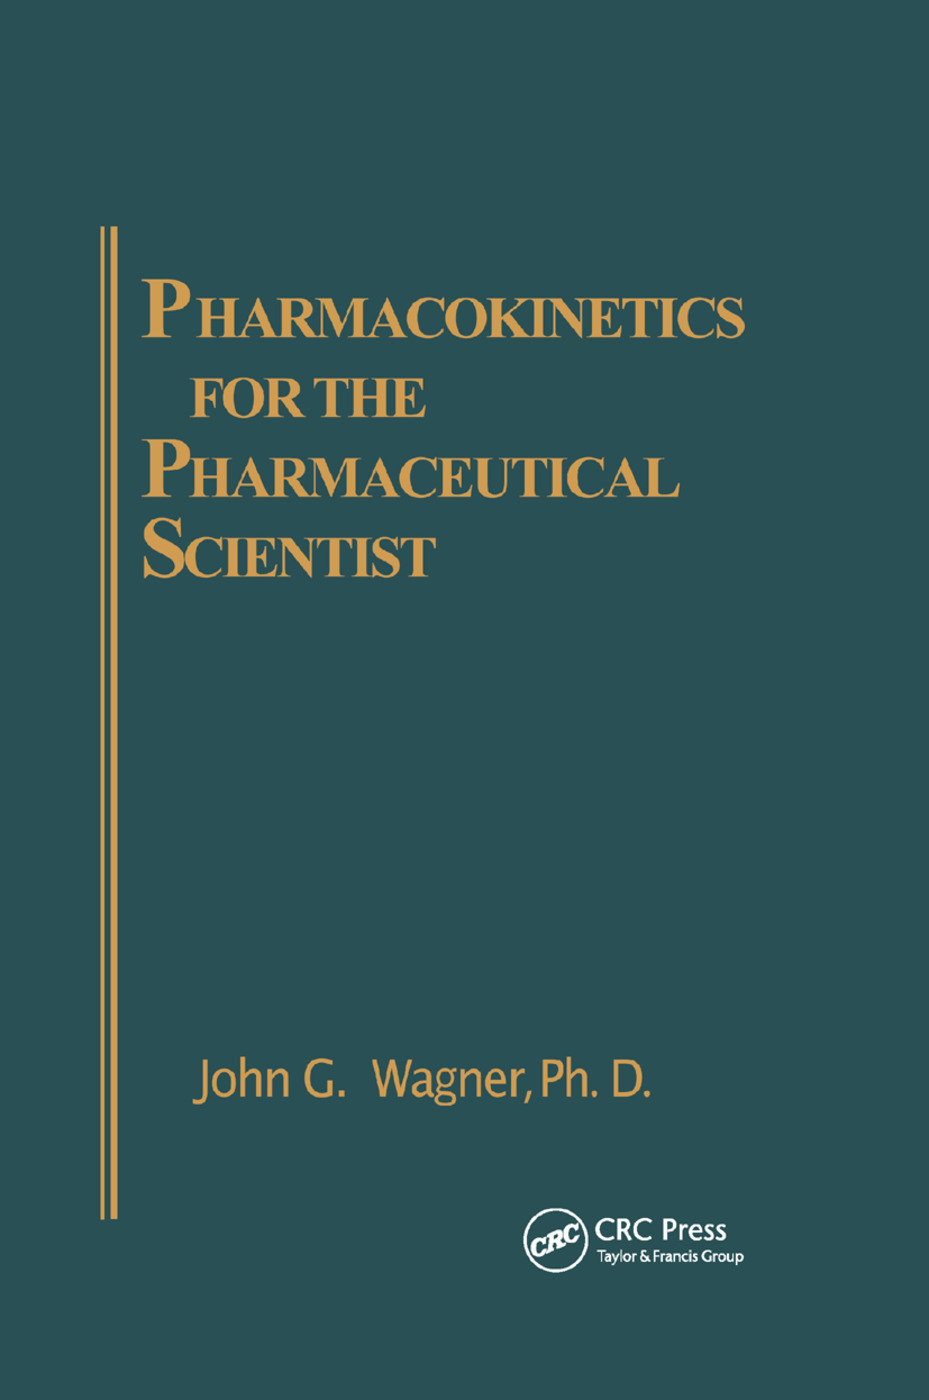 Pharmacokinetics for the Pharmaceutical Scientist: 1st Edition (Paperback) book cover